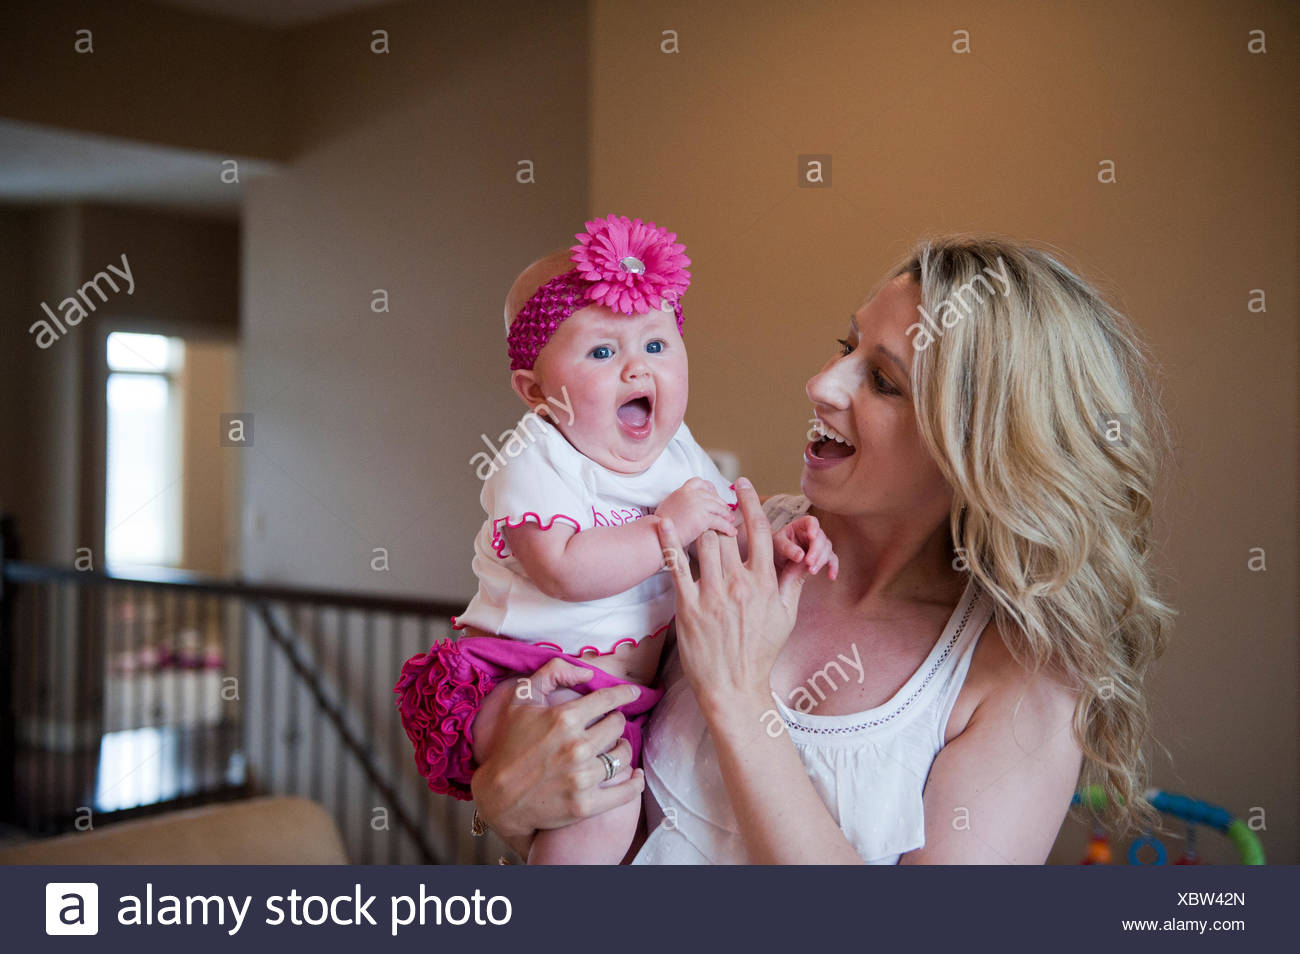 A mother tries to cheer up her fussy young child. - Stock Image